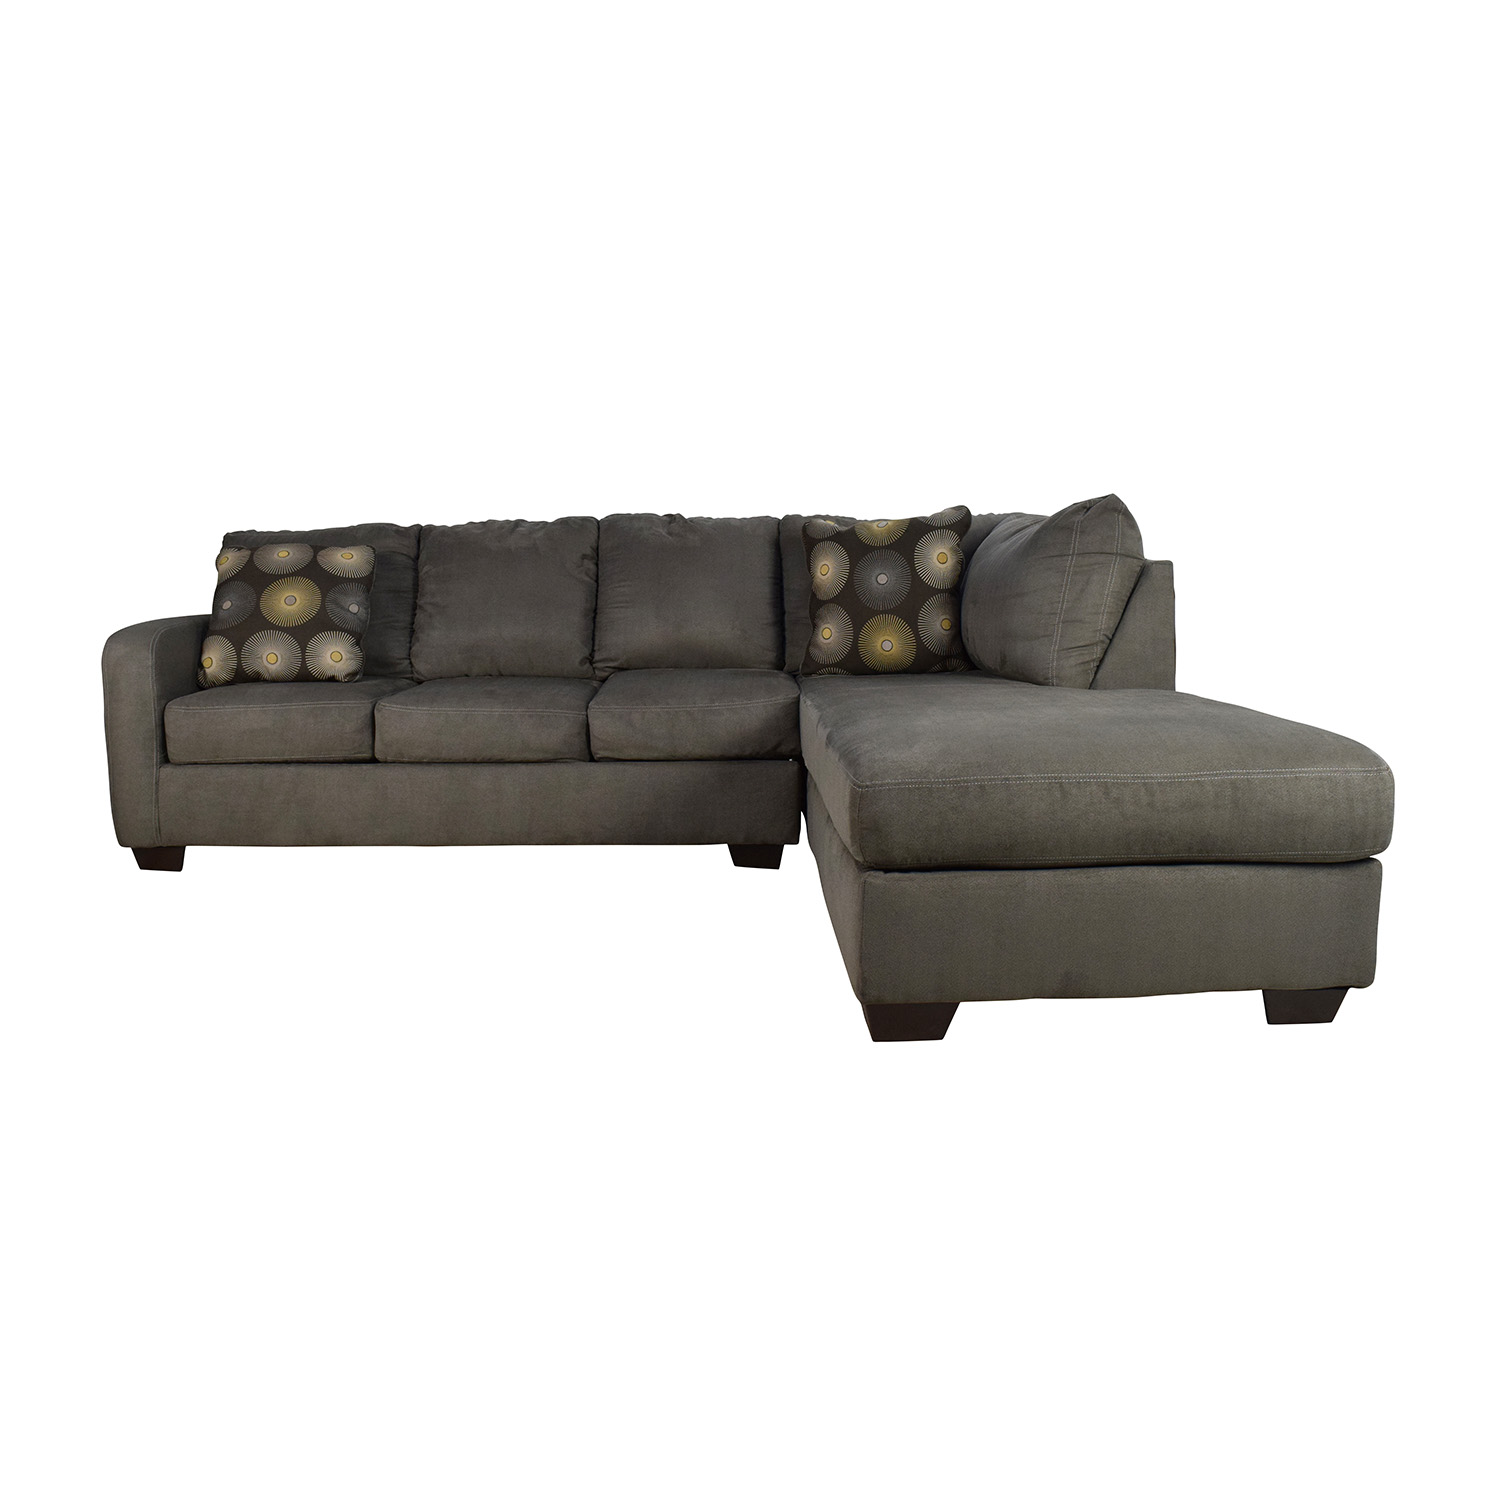 gray sofa navy chairs black wicker outdoor waverly new suede by american thesofa